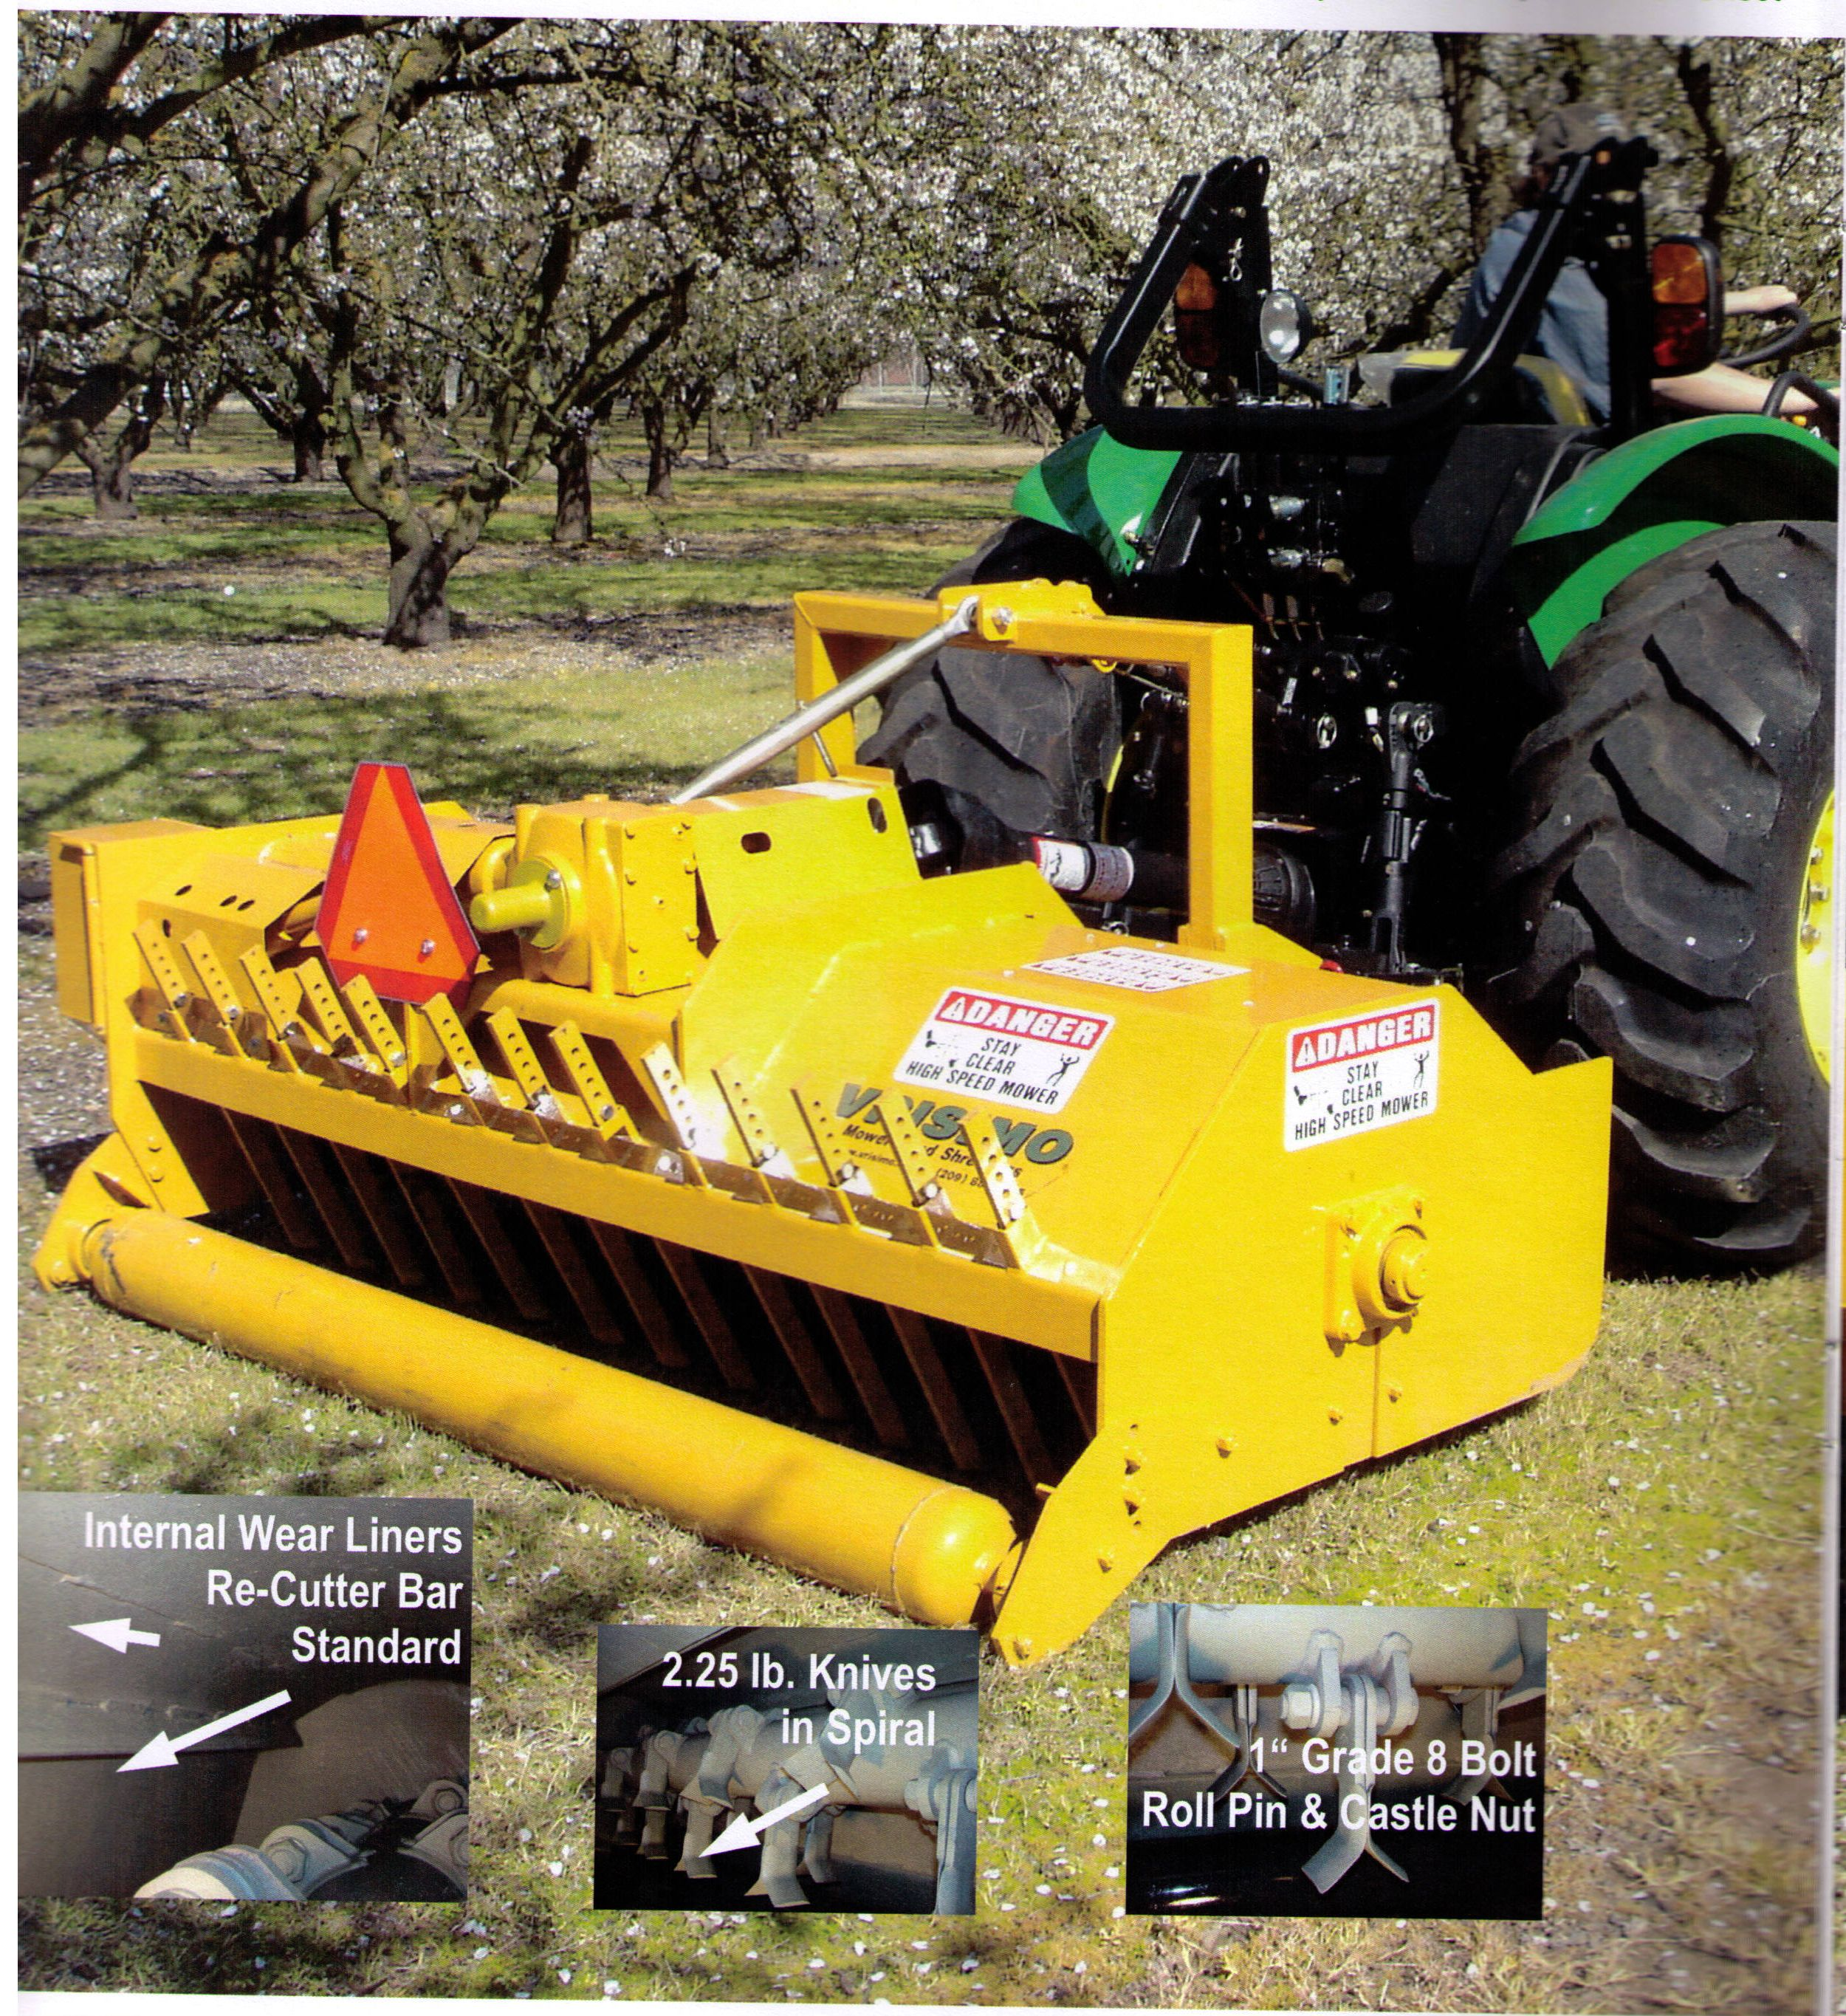 500 Series Brush Shredder, Category 2 Three Point Hitch Mount, Mounts Centered Or Offset